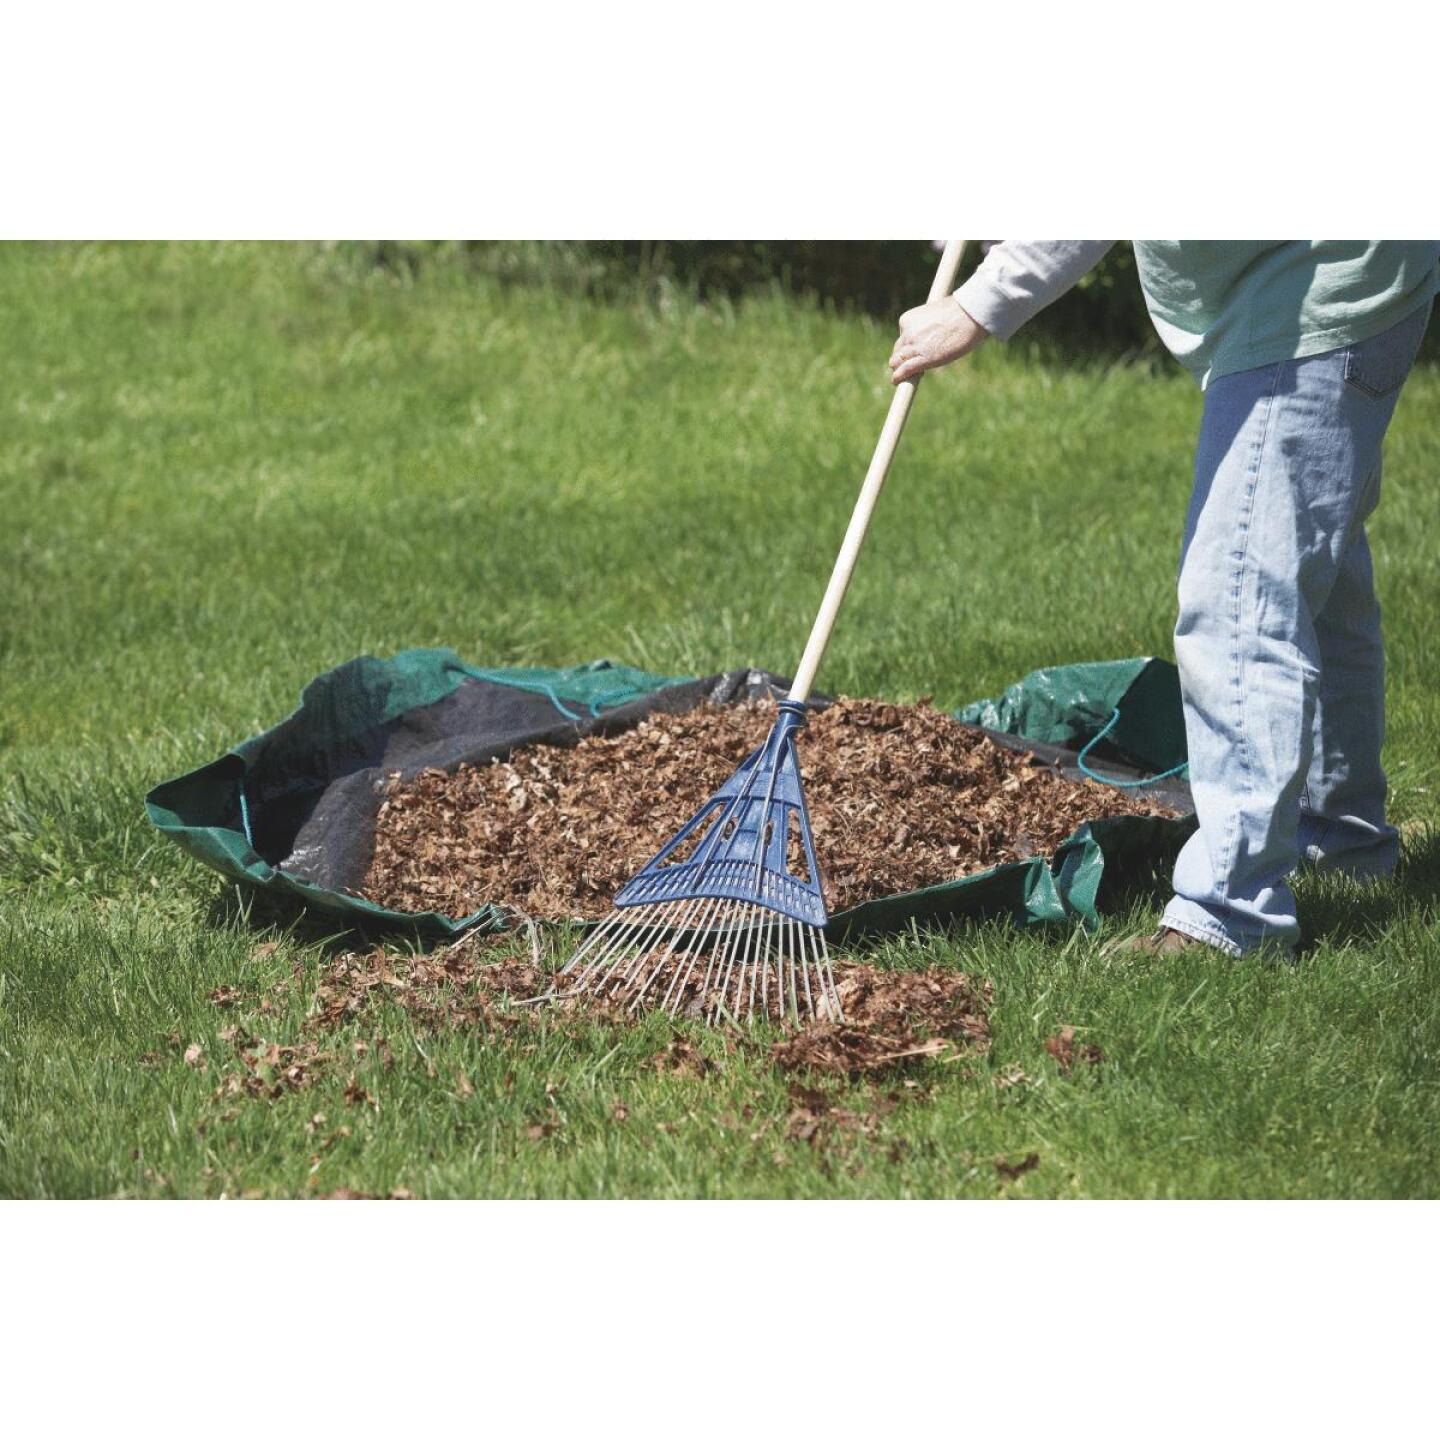 Do it 6 Ft. x 6 Ft. Poly Fabric Green Lawn Cleanup Tarp Image 3